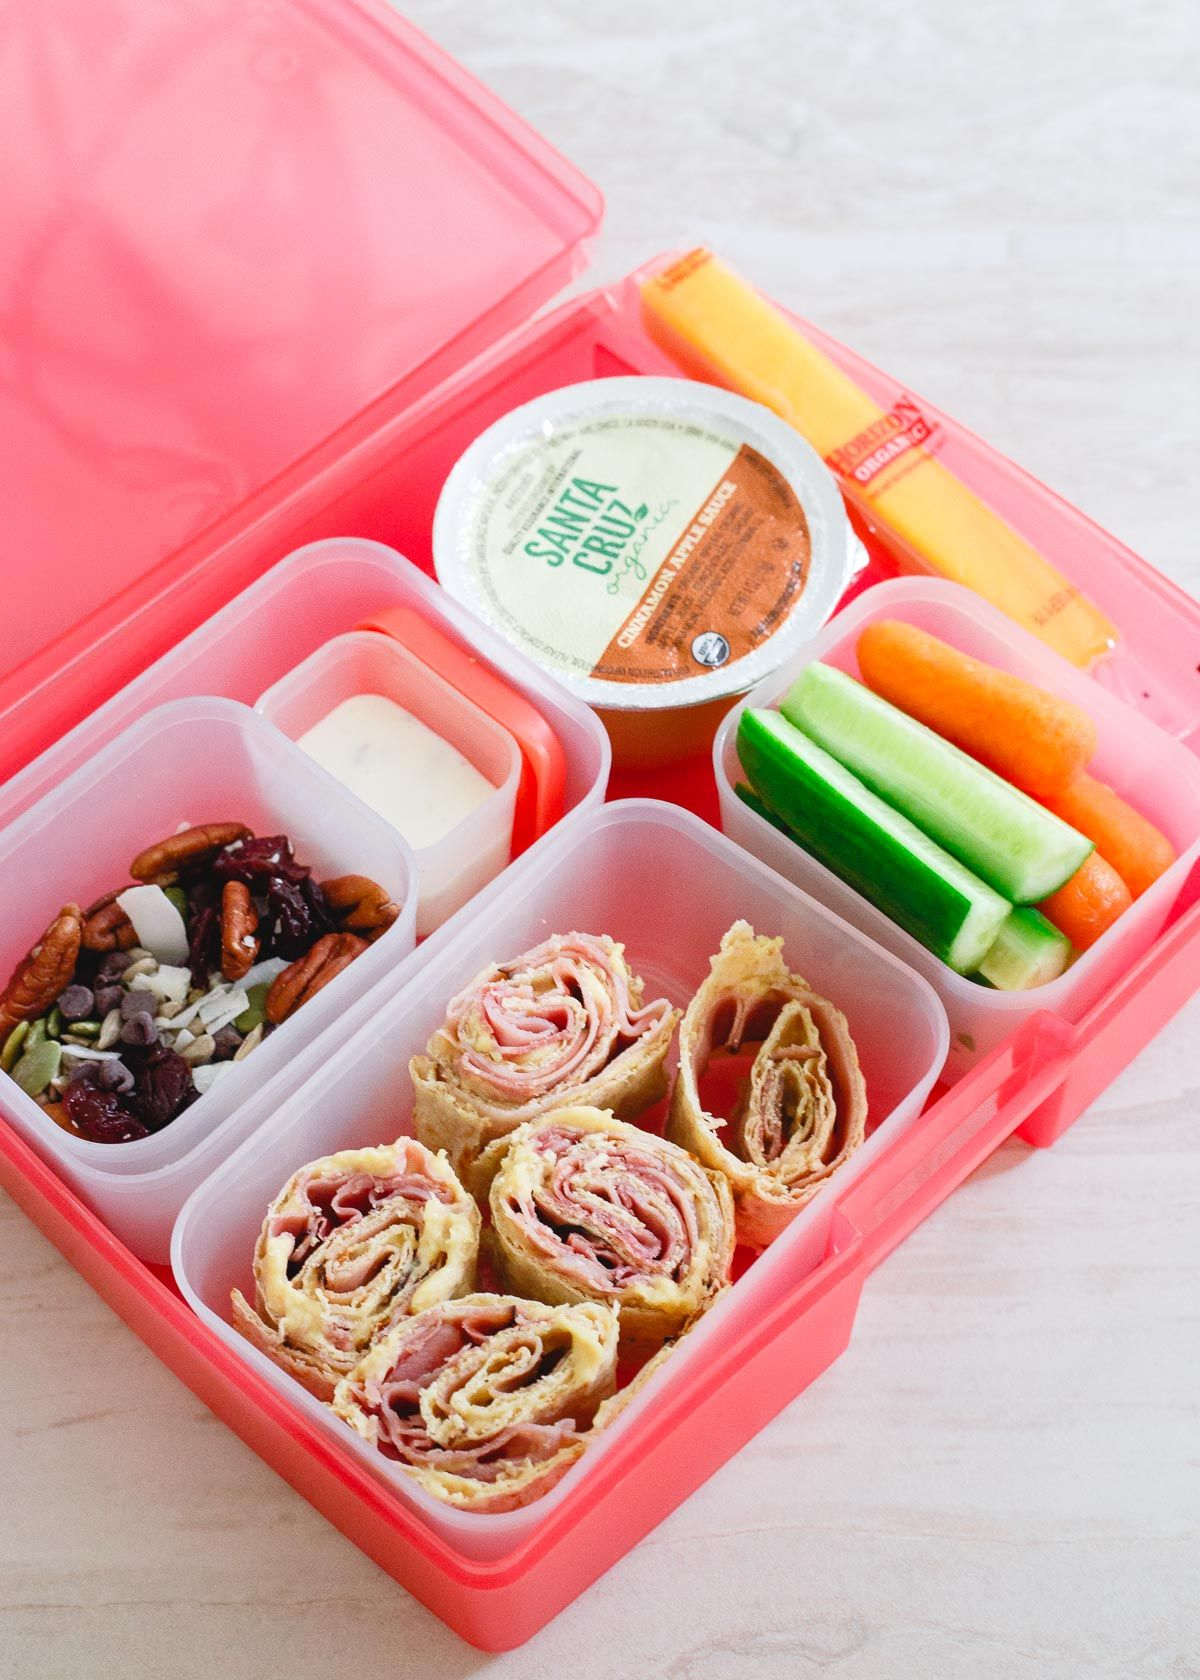 Simple lunchbox ideas including a recipe for an easy trail mix your kids will love is just in time for back to school!   #sponsored